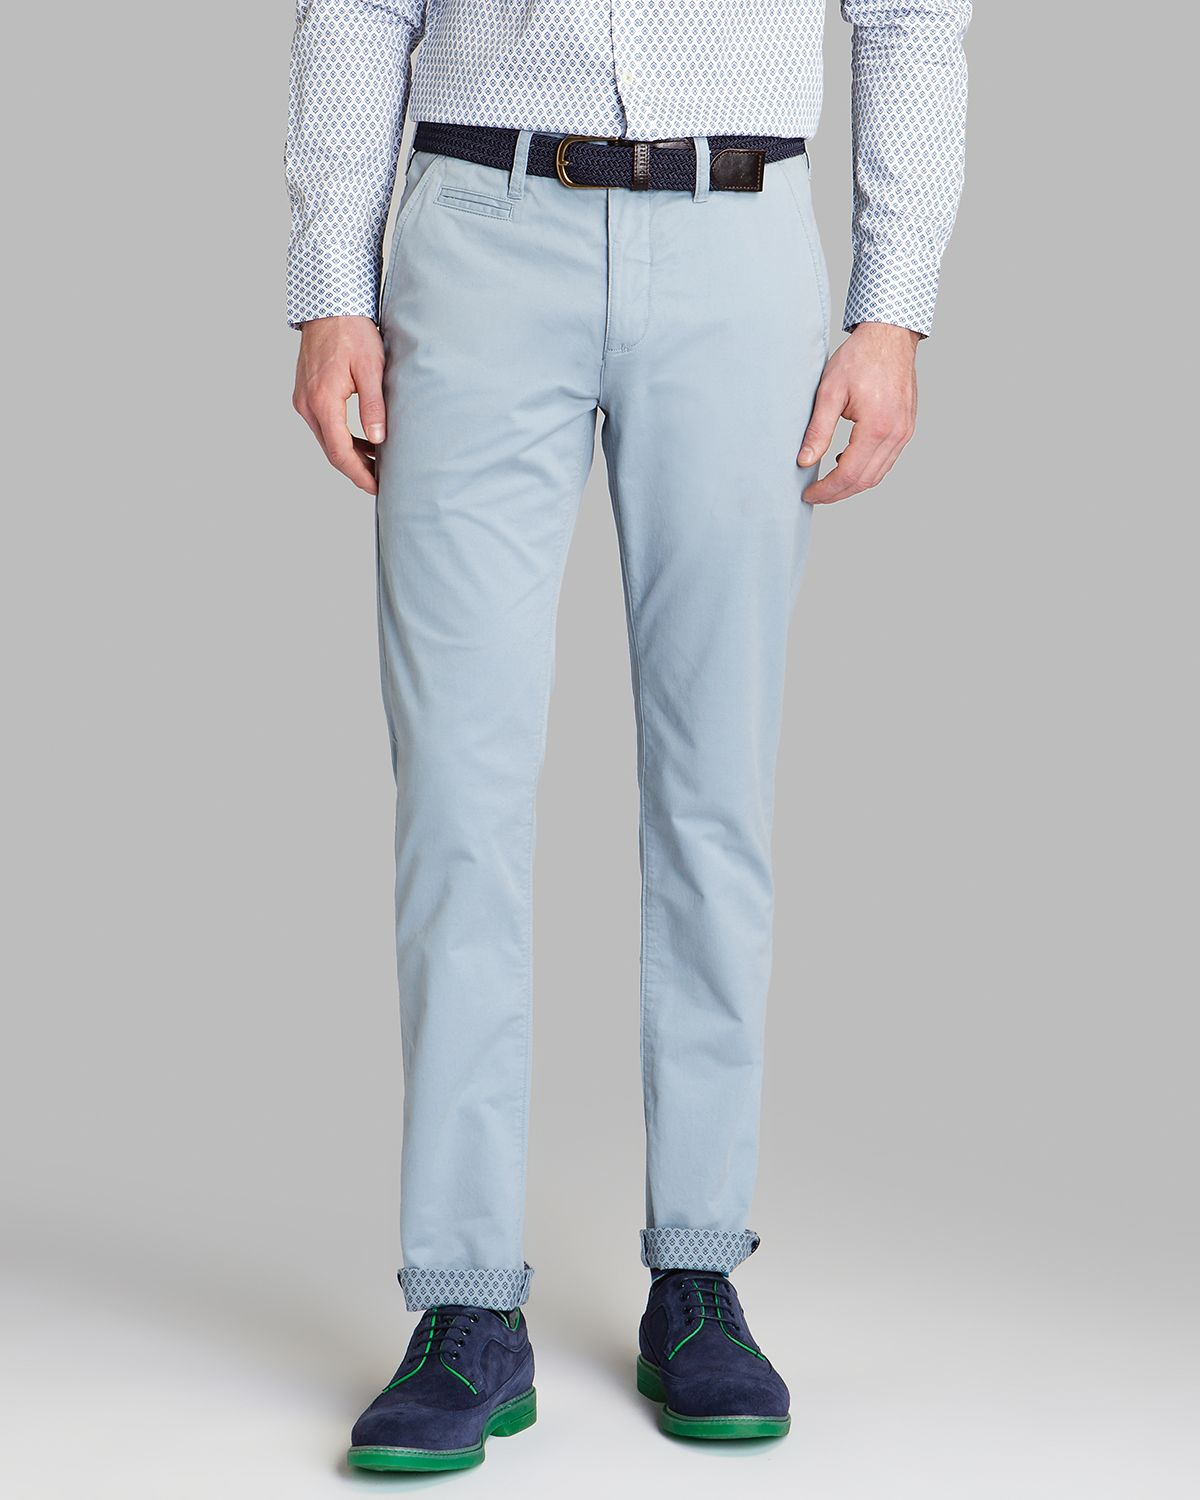 084b51bdf6d8ae Gallery. Previously sold at  Bloomingdale s · Men s Olive Pants ...